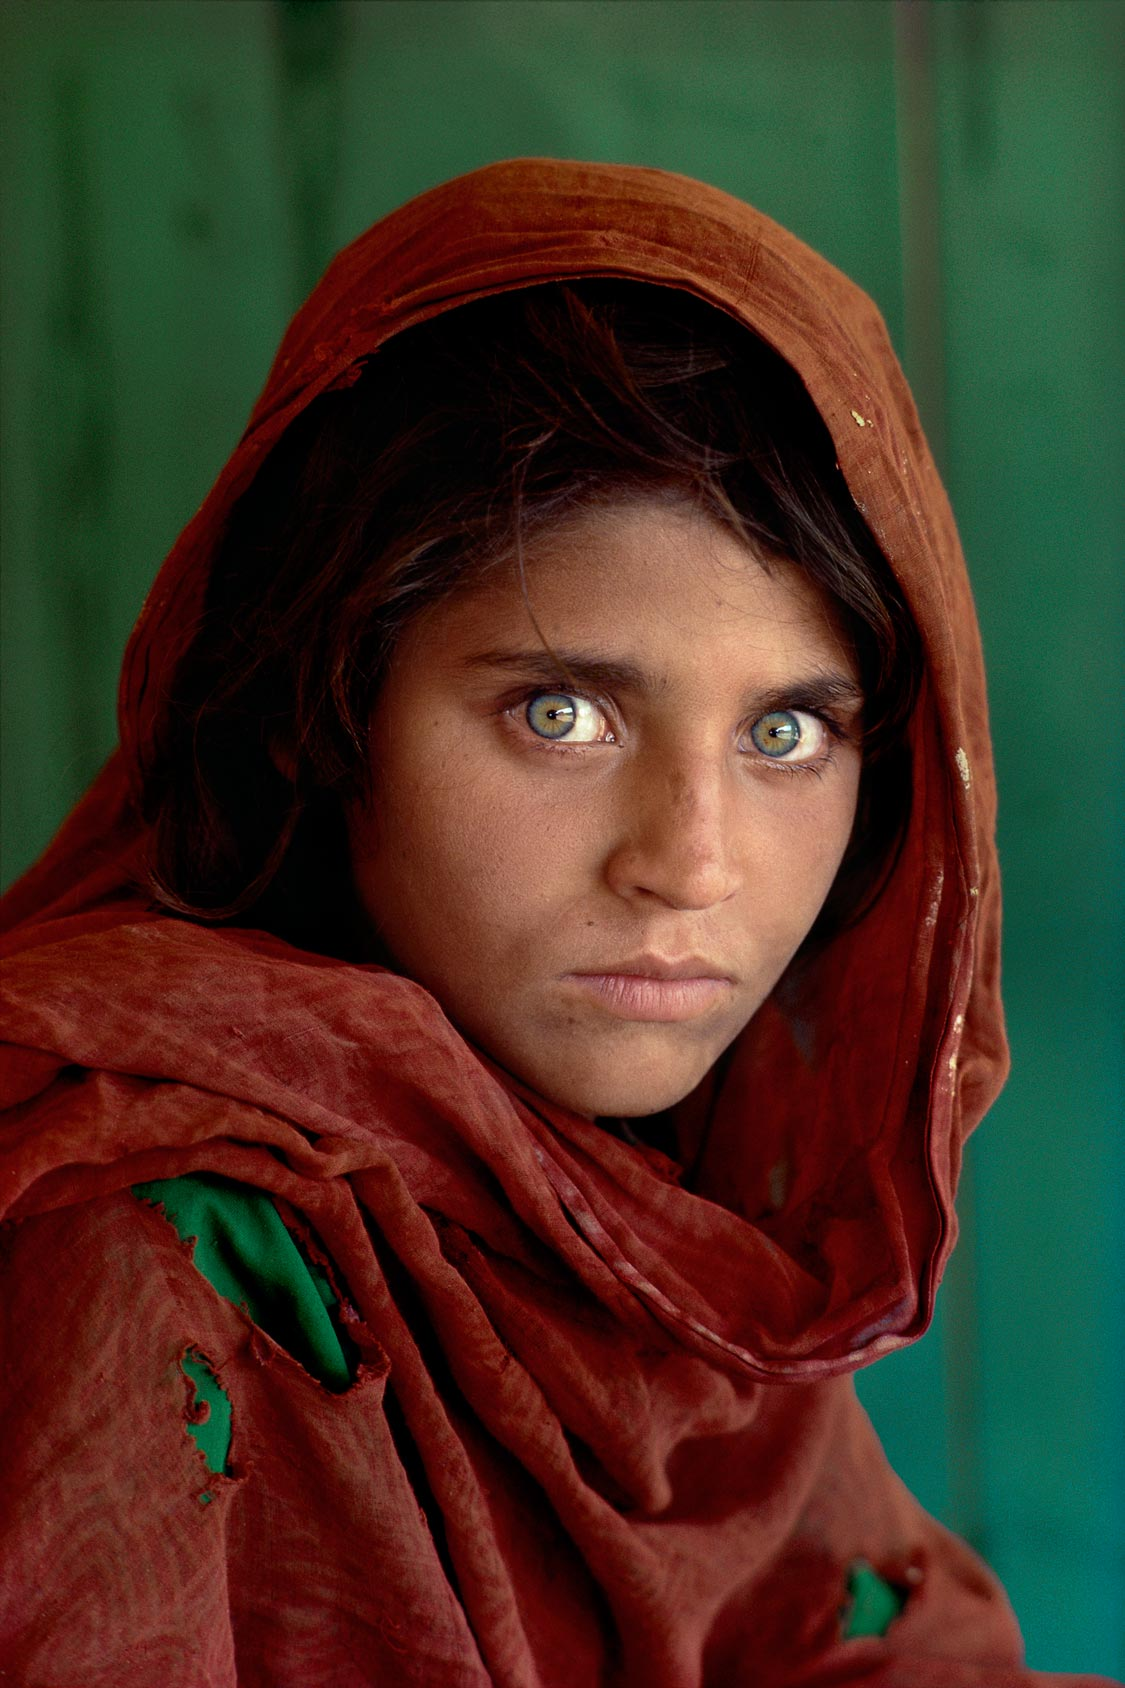 Sharbat Gula, photographed by Steve MCCurry in 1984 at the age of 12    ©Steve McCurry / National Geographic